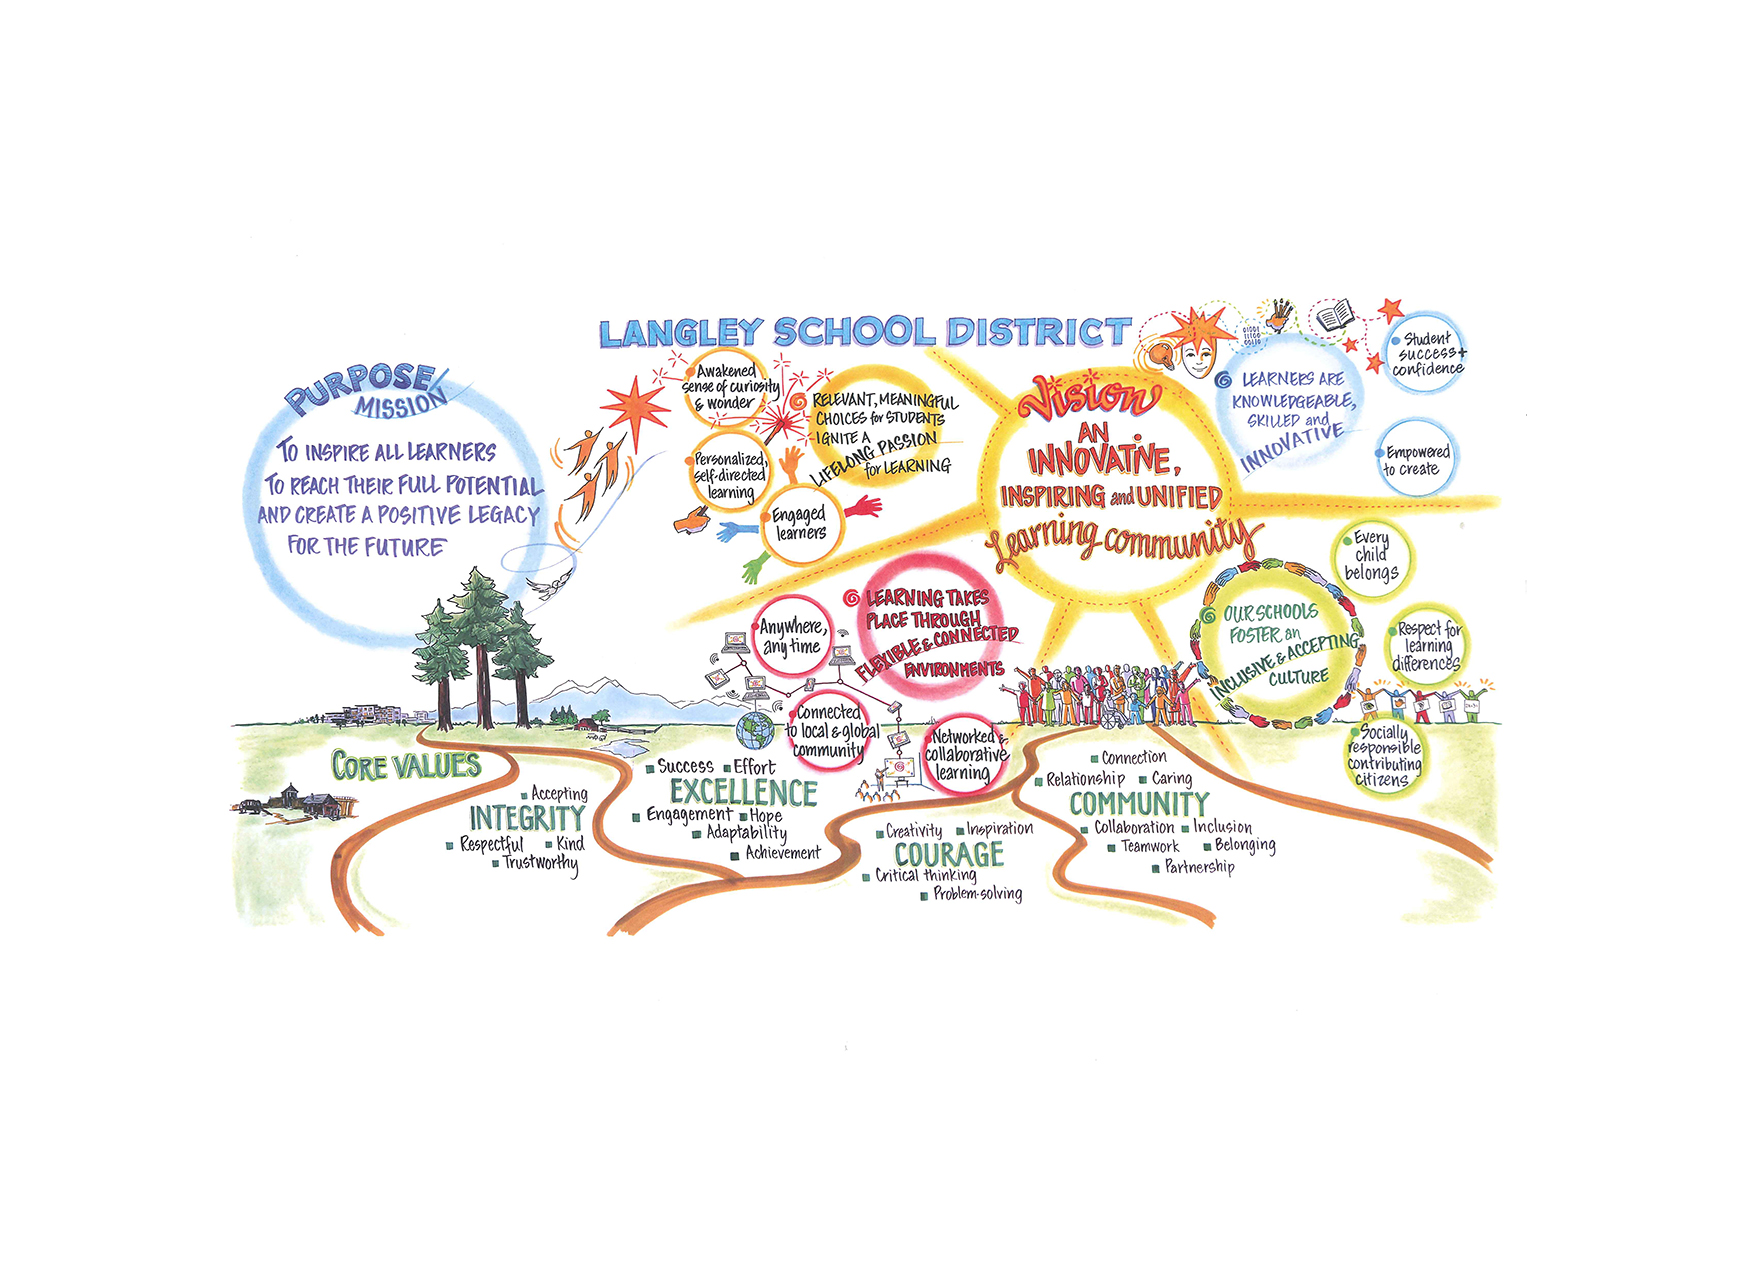 Langley School District Vision